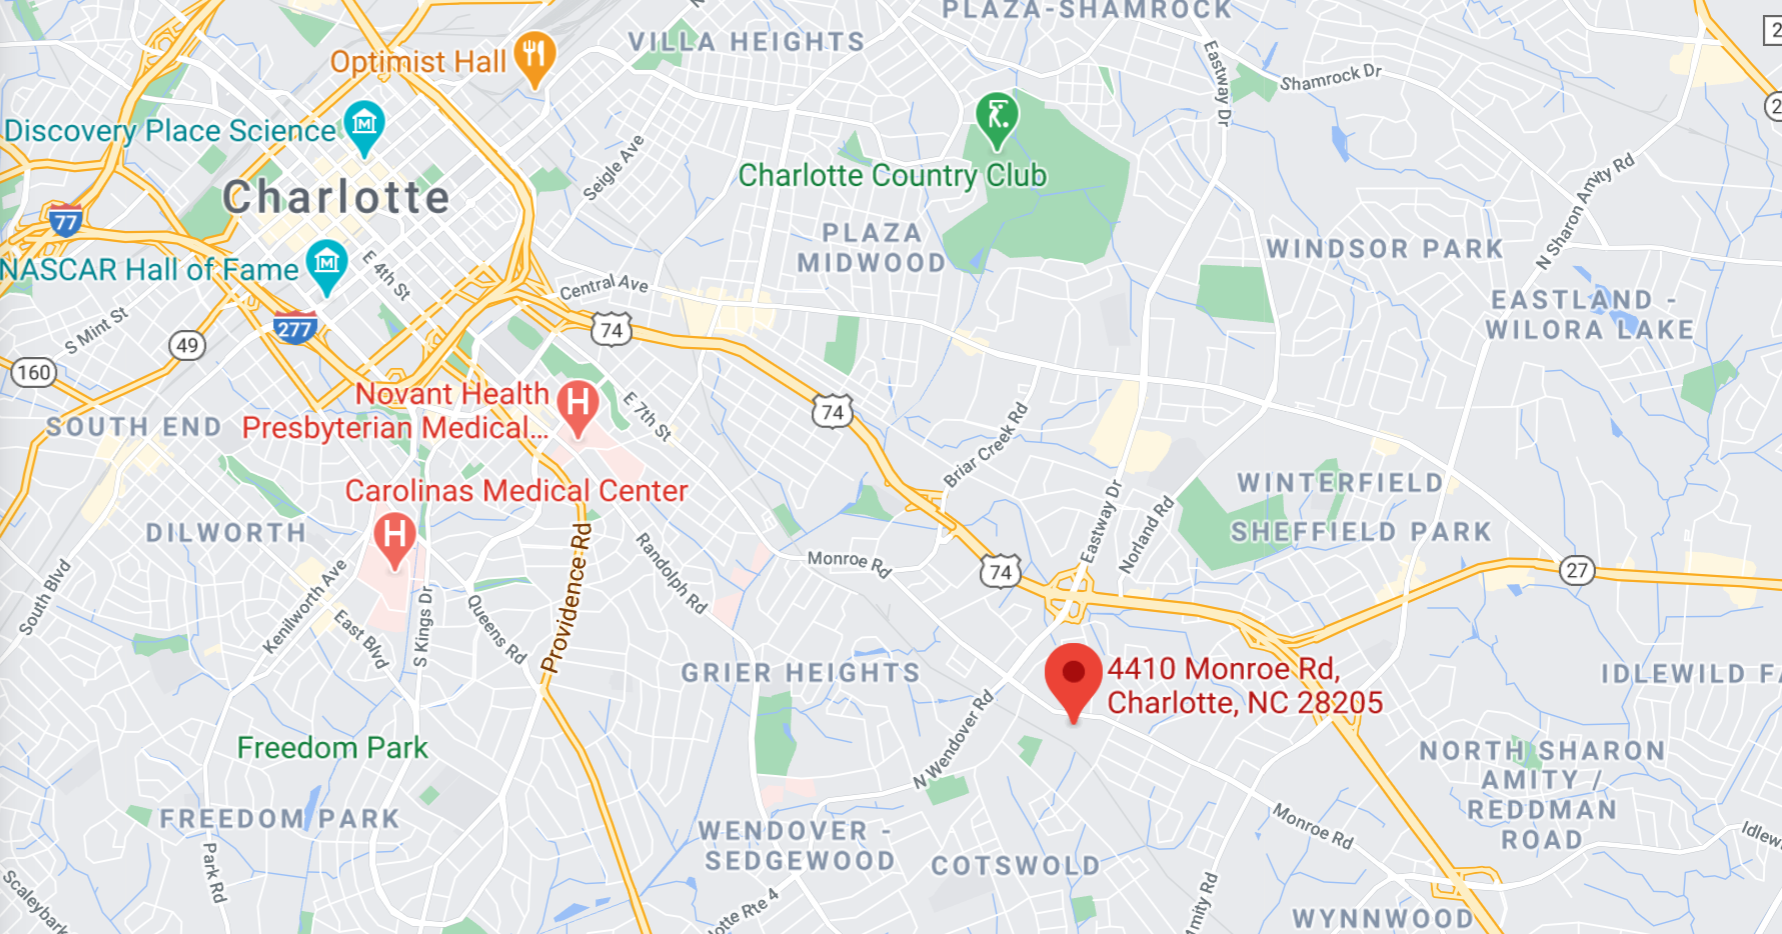 Google Map view of Clarity Showroom